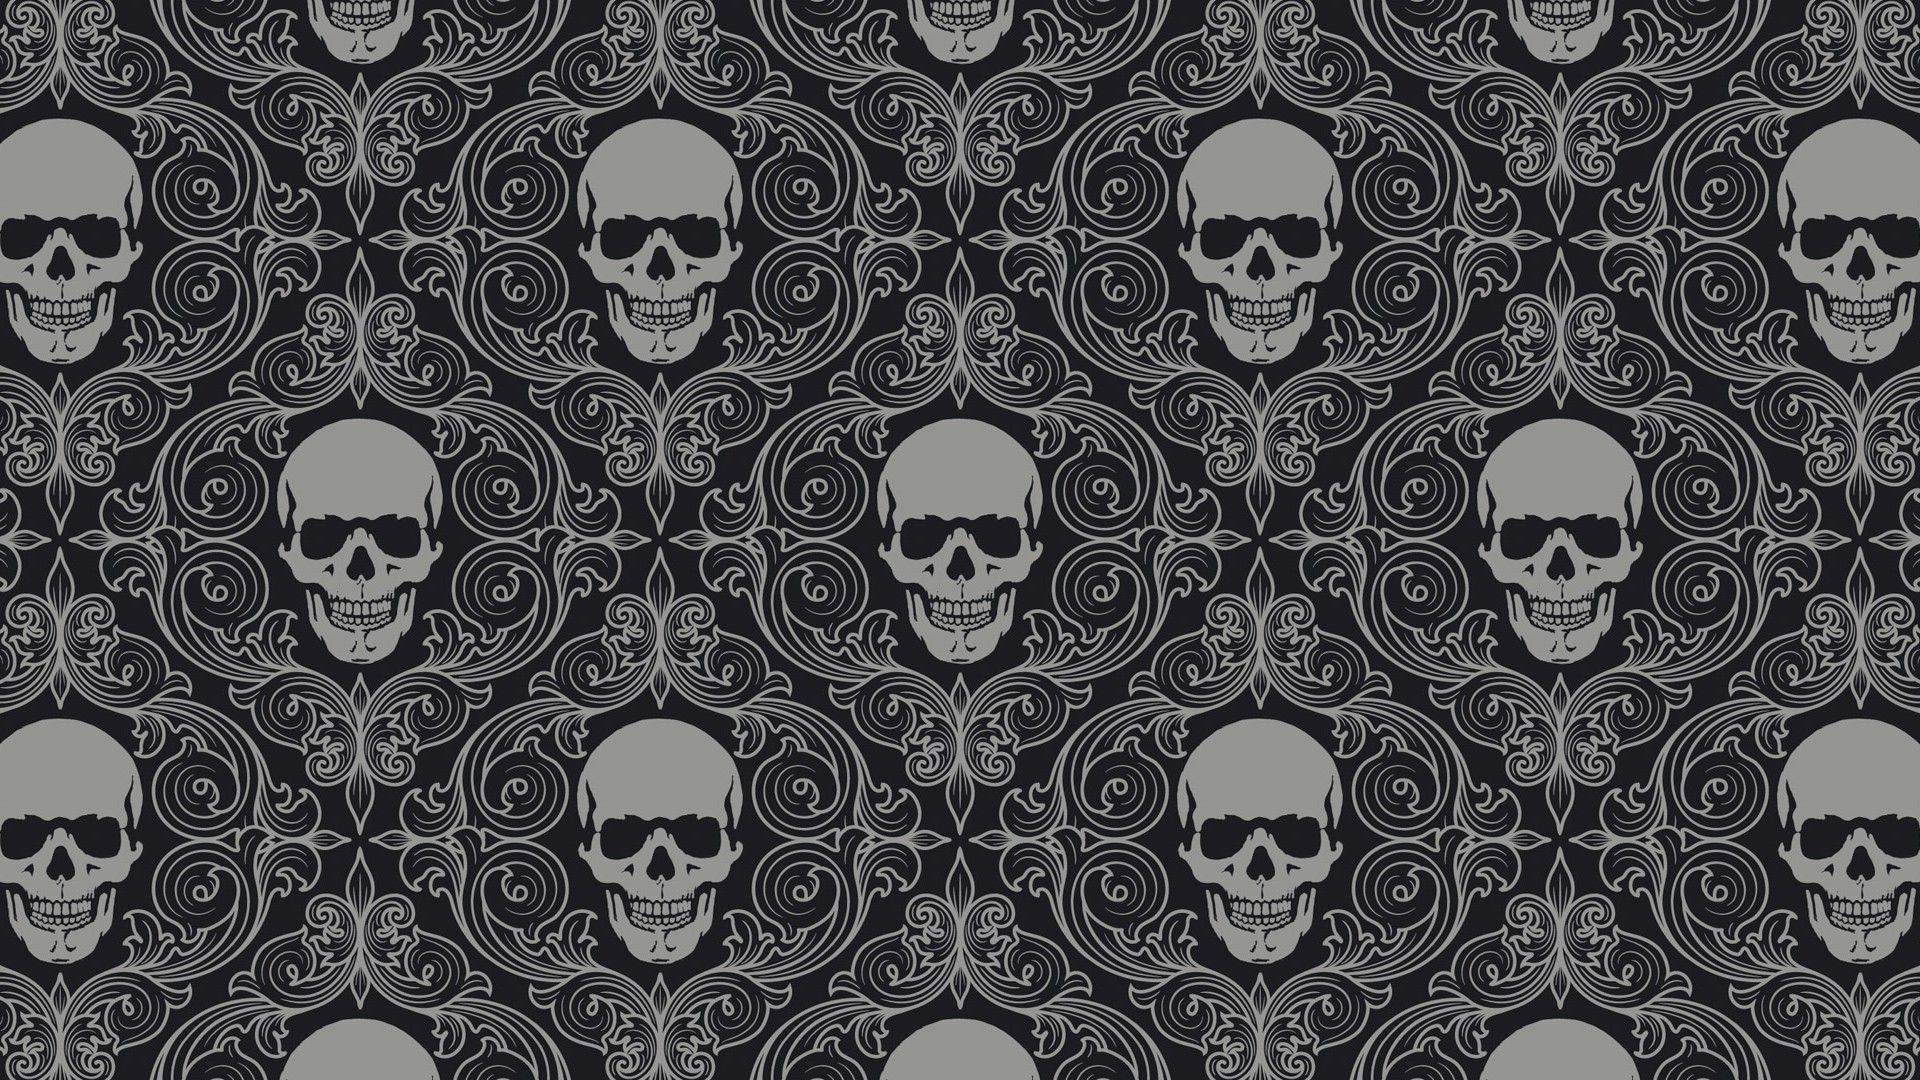 Gothic Skull Wallpapers Top Free Gothic Skull Backgrounds